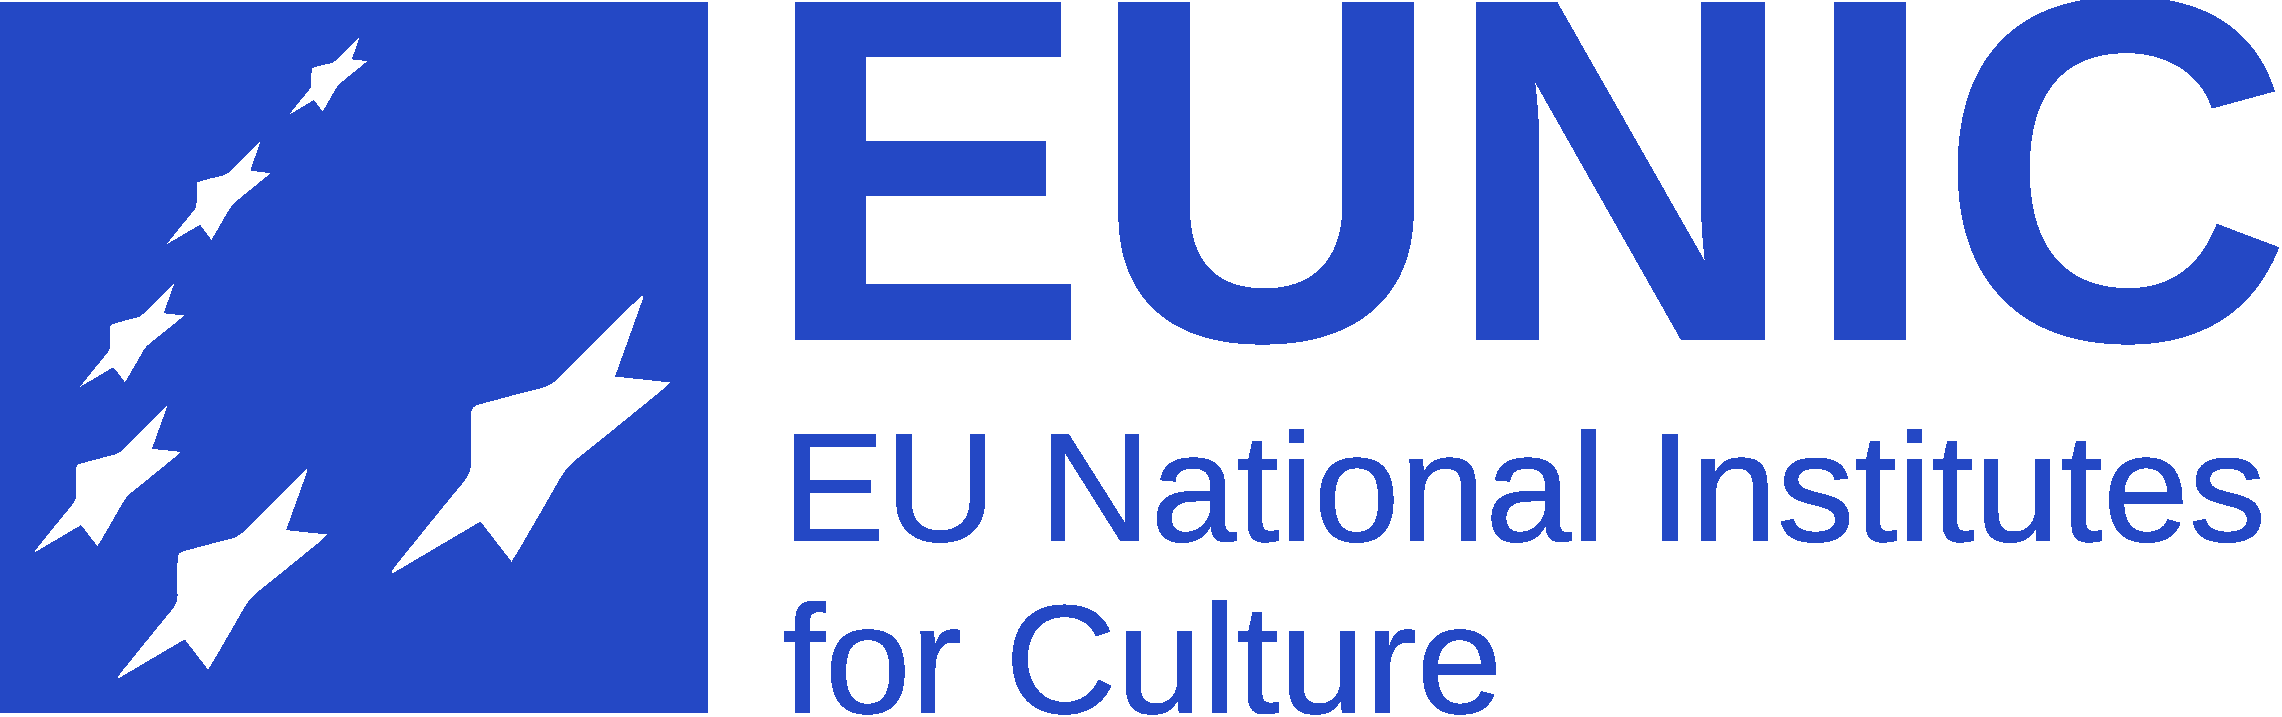 EUNIC Global - European Union National Institutes for Culture